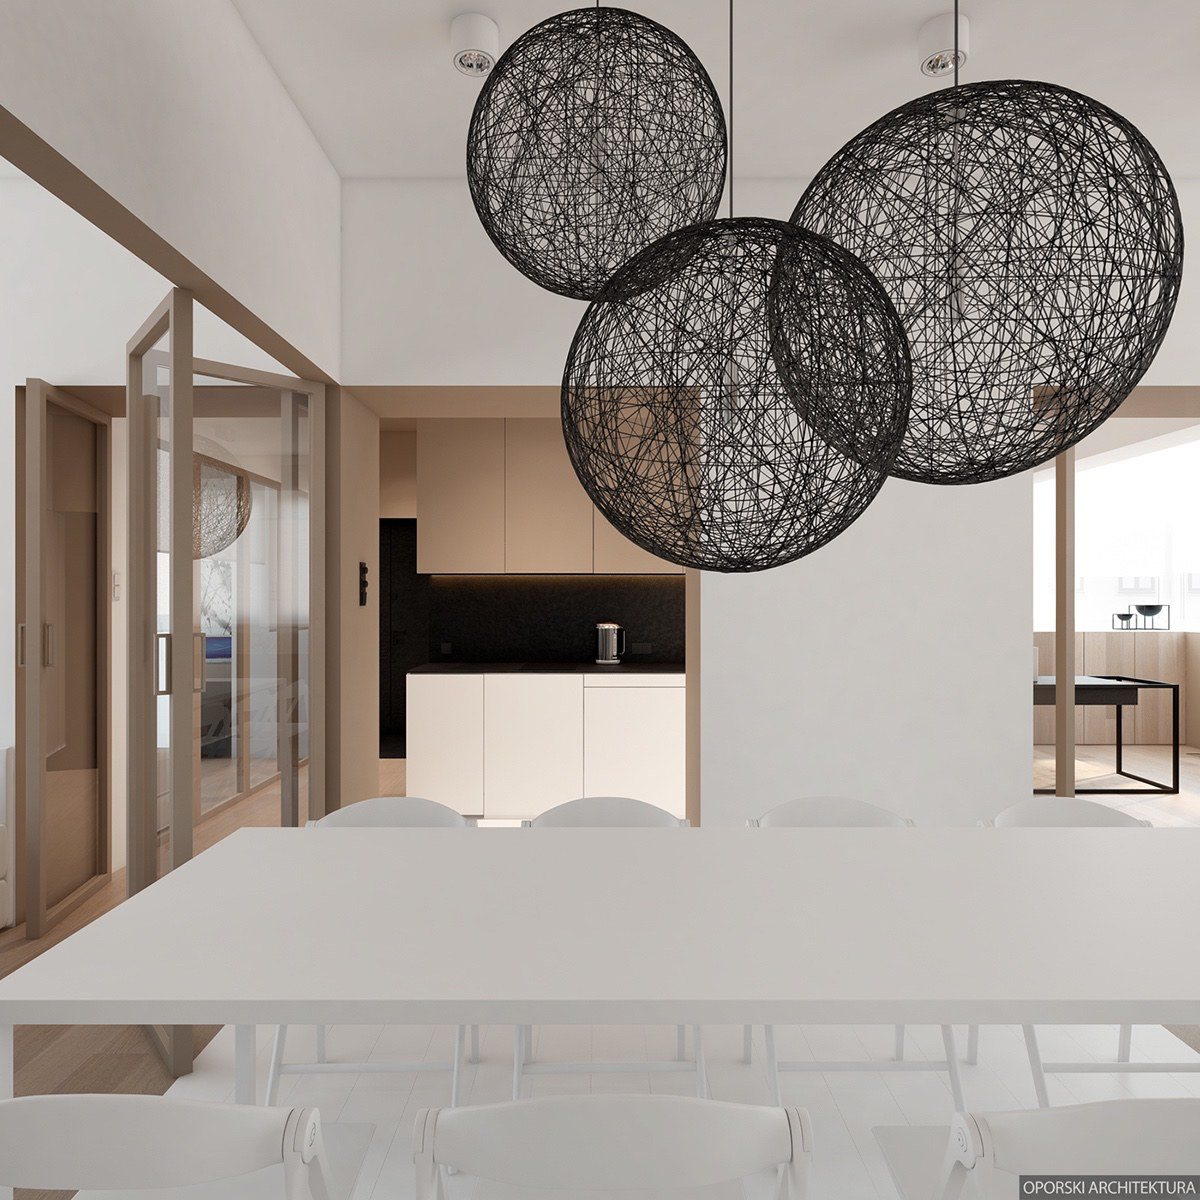 Oversized Pendants Over Dining Table Idea - 2 super simple homes with light wood panels and matte black accents